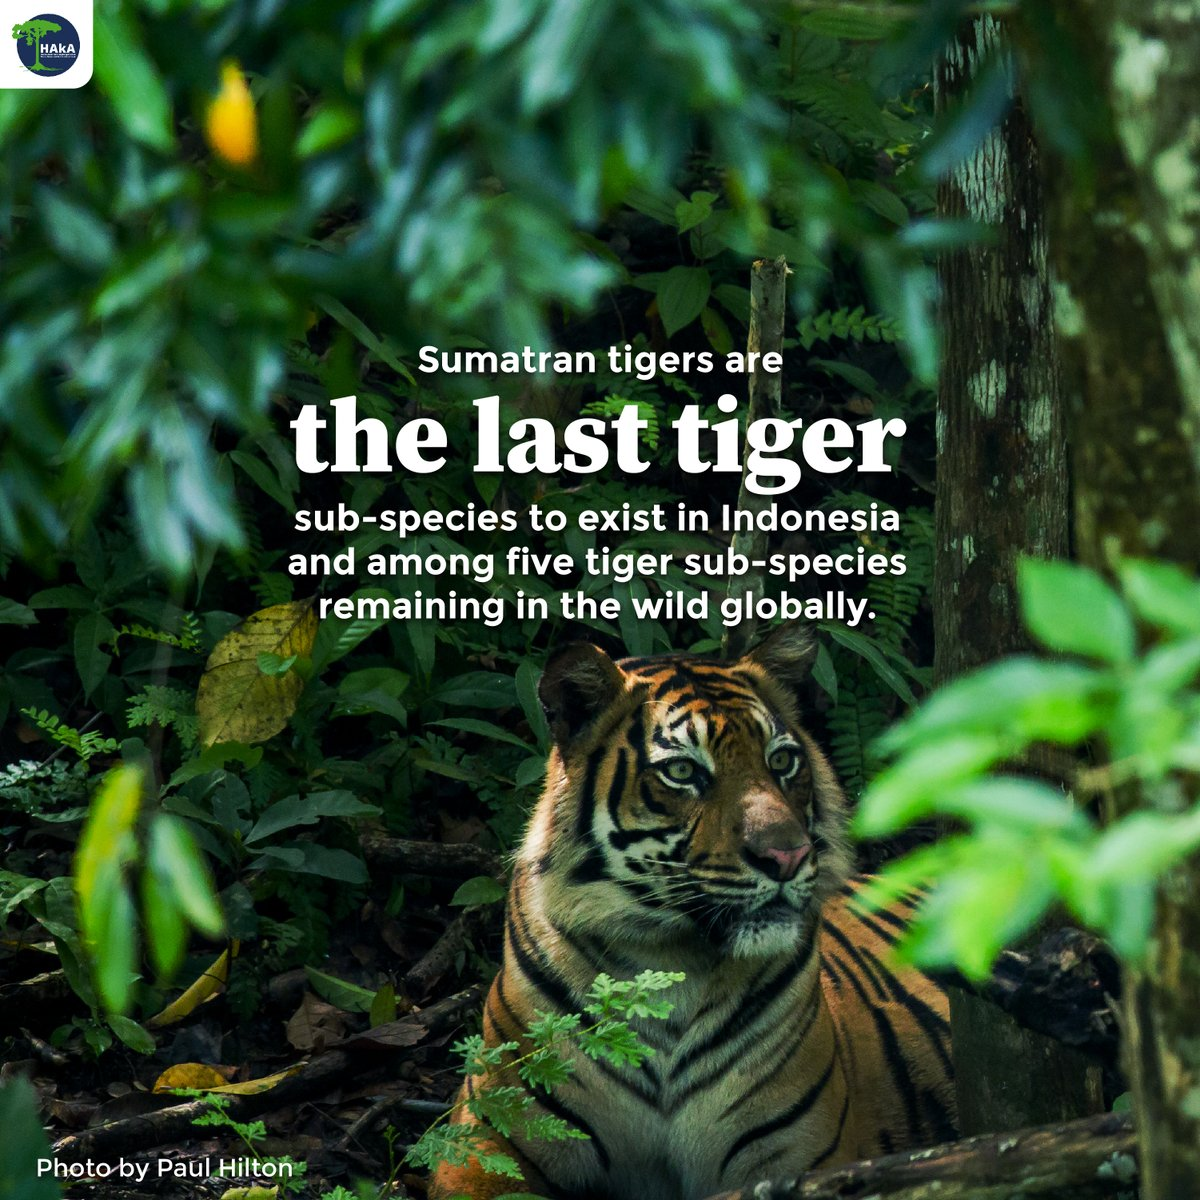 Habitat loss is the biggest threat that is bringing the #SumatranTiger to the brink of extinction. in this #GlobalTigerDay, let's spread the message of the importance of protecting the #LeuserEcosystem as the jungle for Sumatran tigers to  continue to roam freely in the wild. https://t.co/PX1VpnRE03